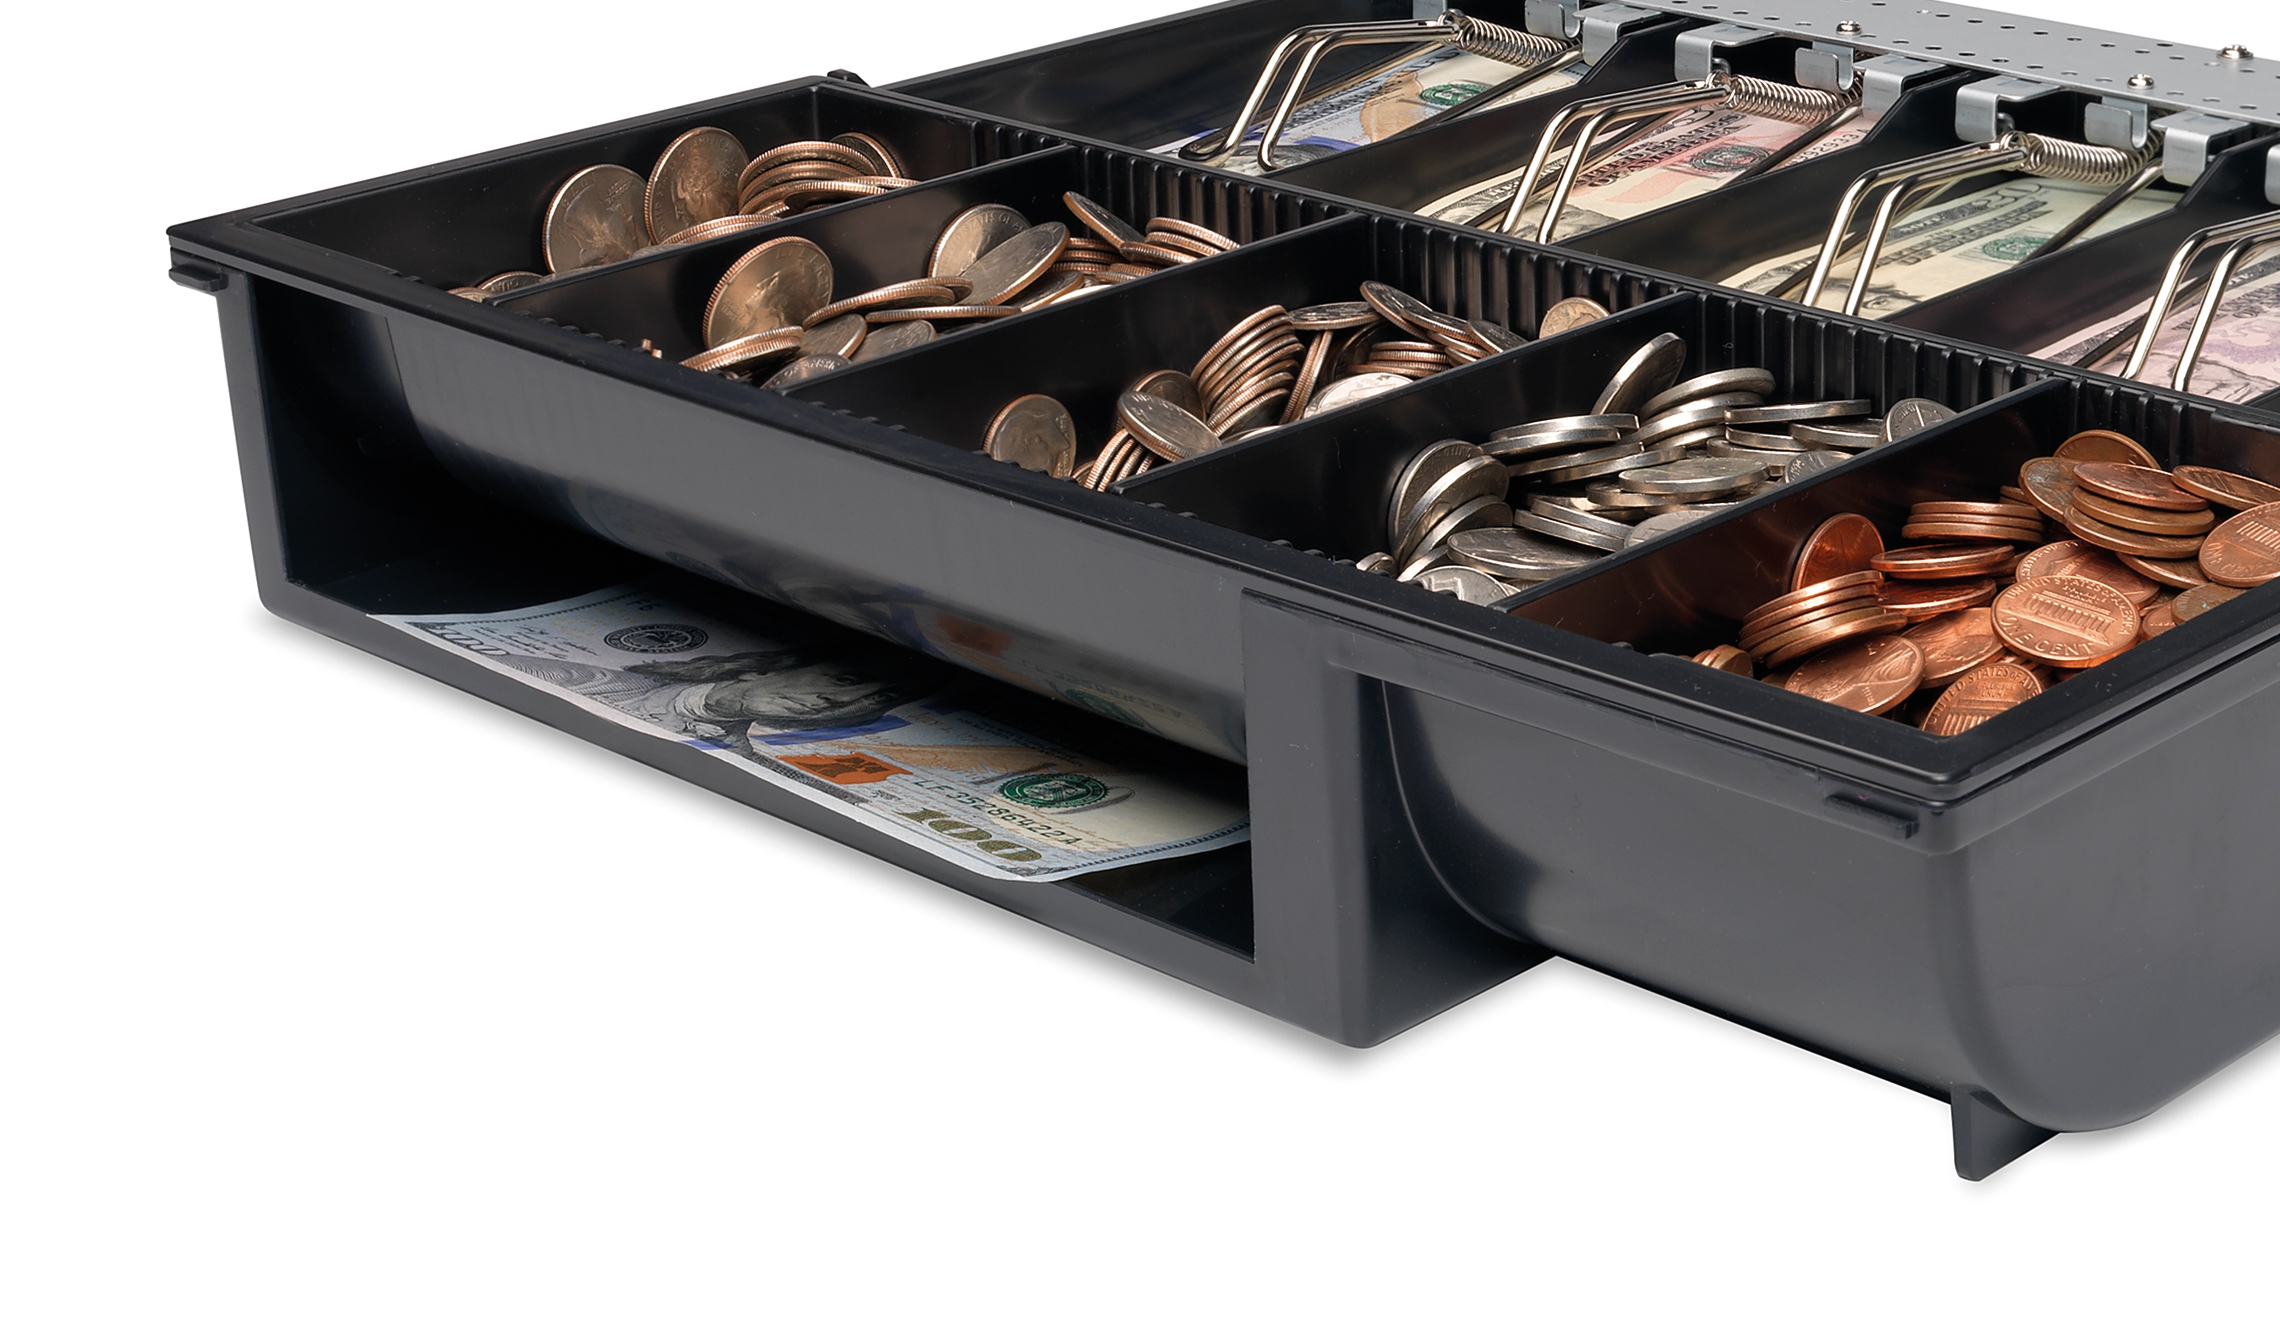 safescan-sd4141tray-cash-tray